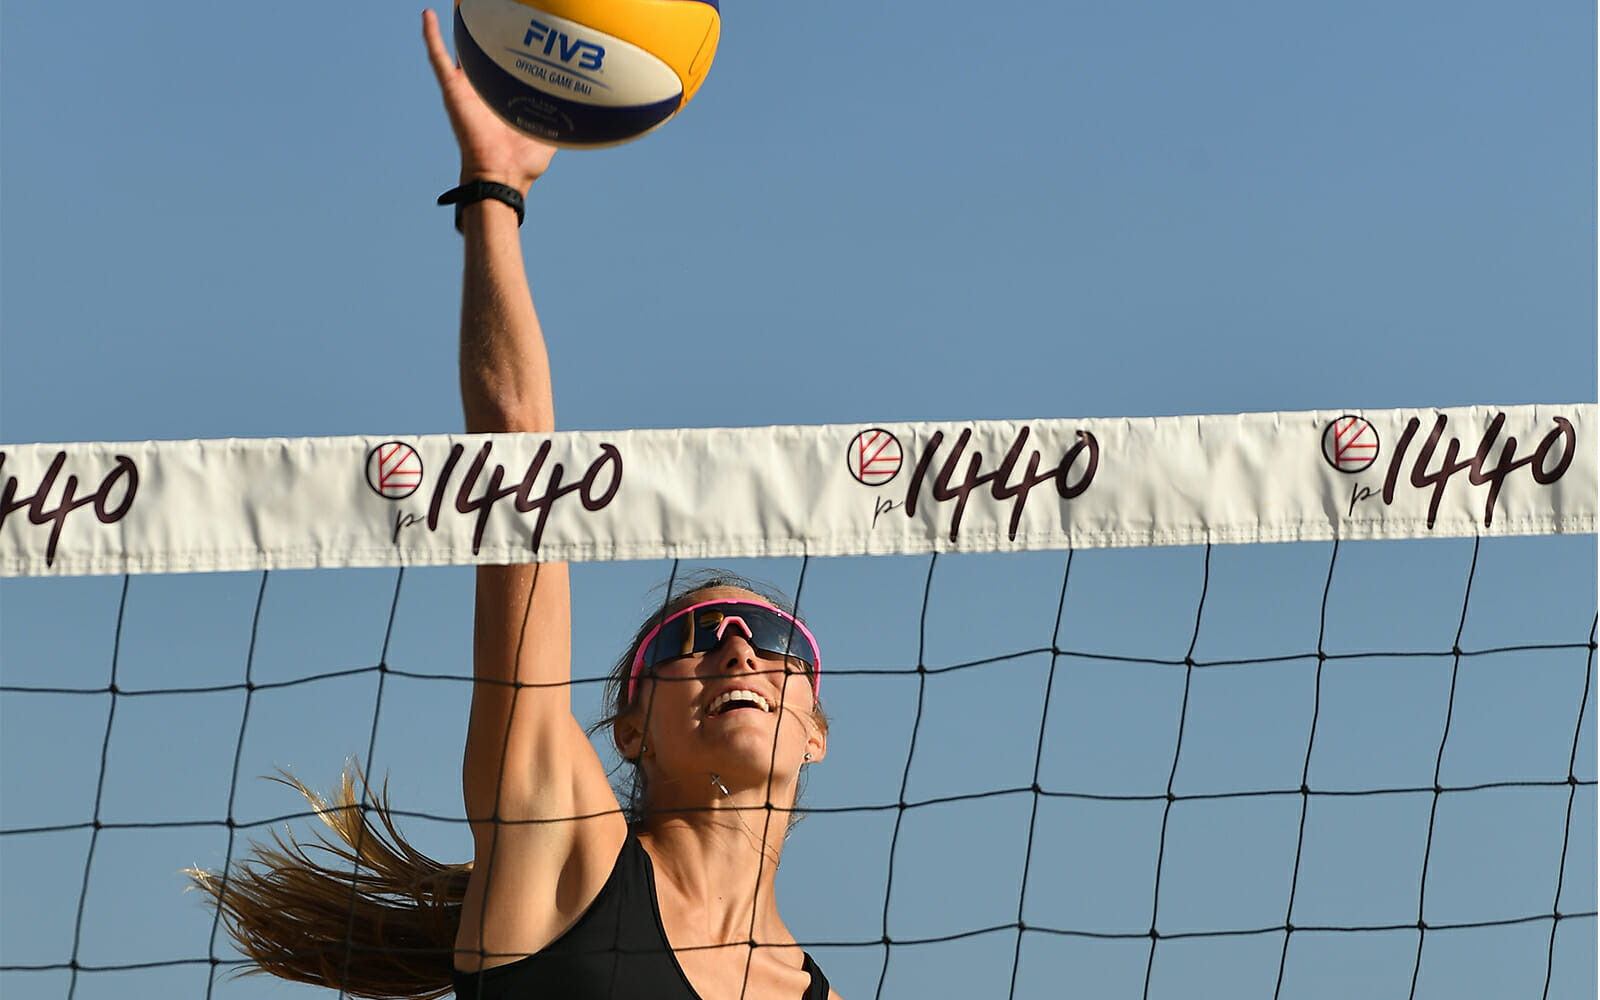 The p1440 event series will sponsor the FIVB Las Vegas Open ©IFBB